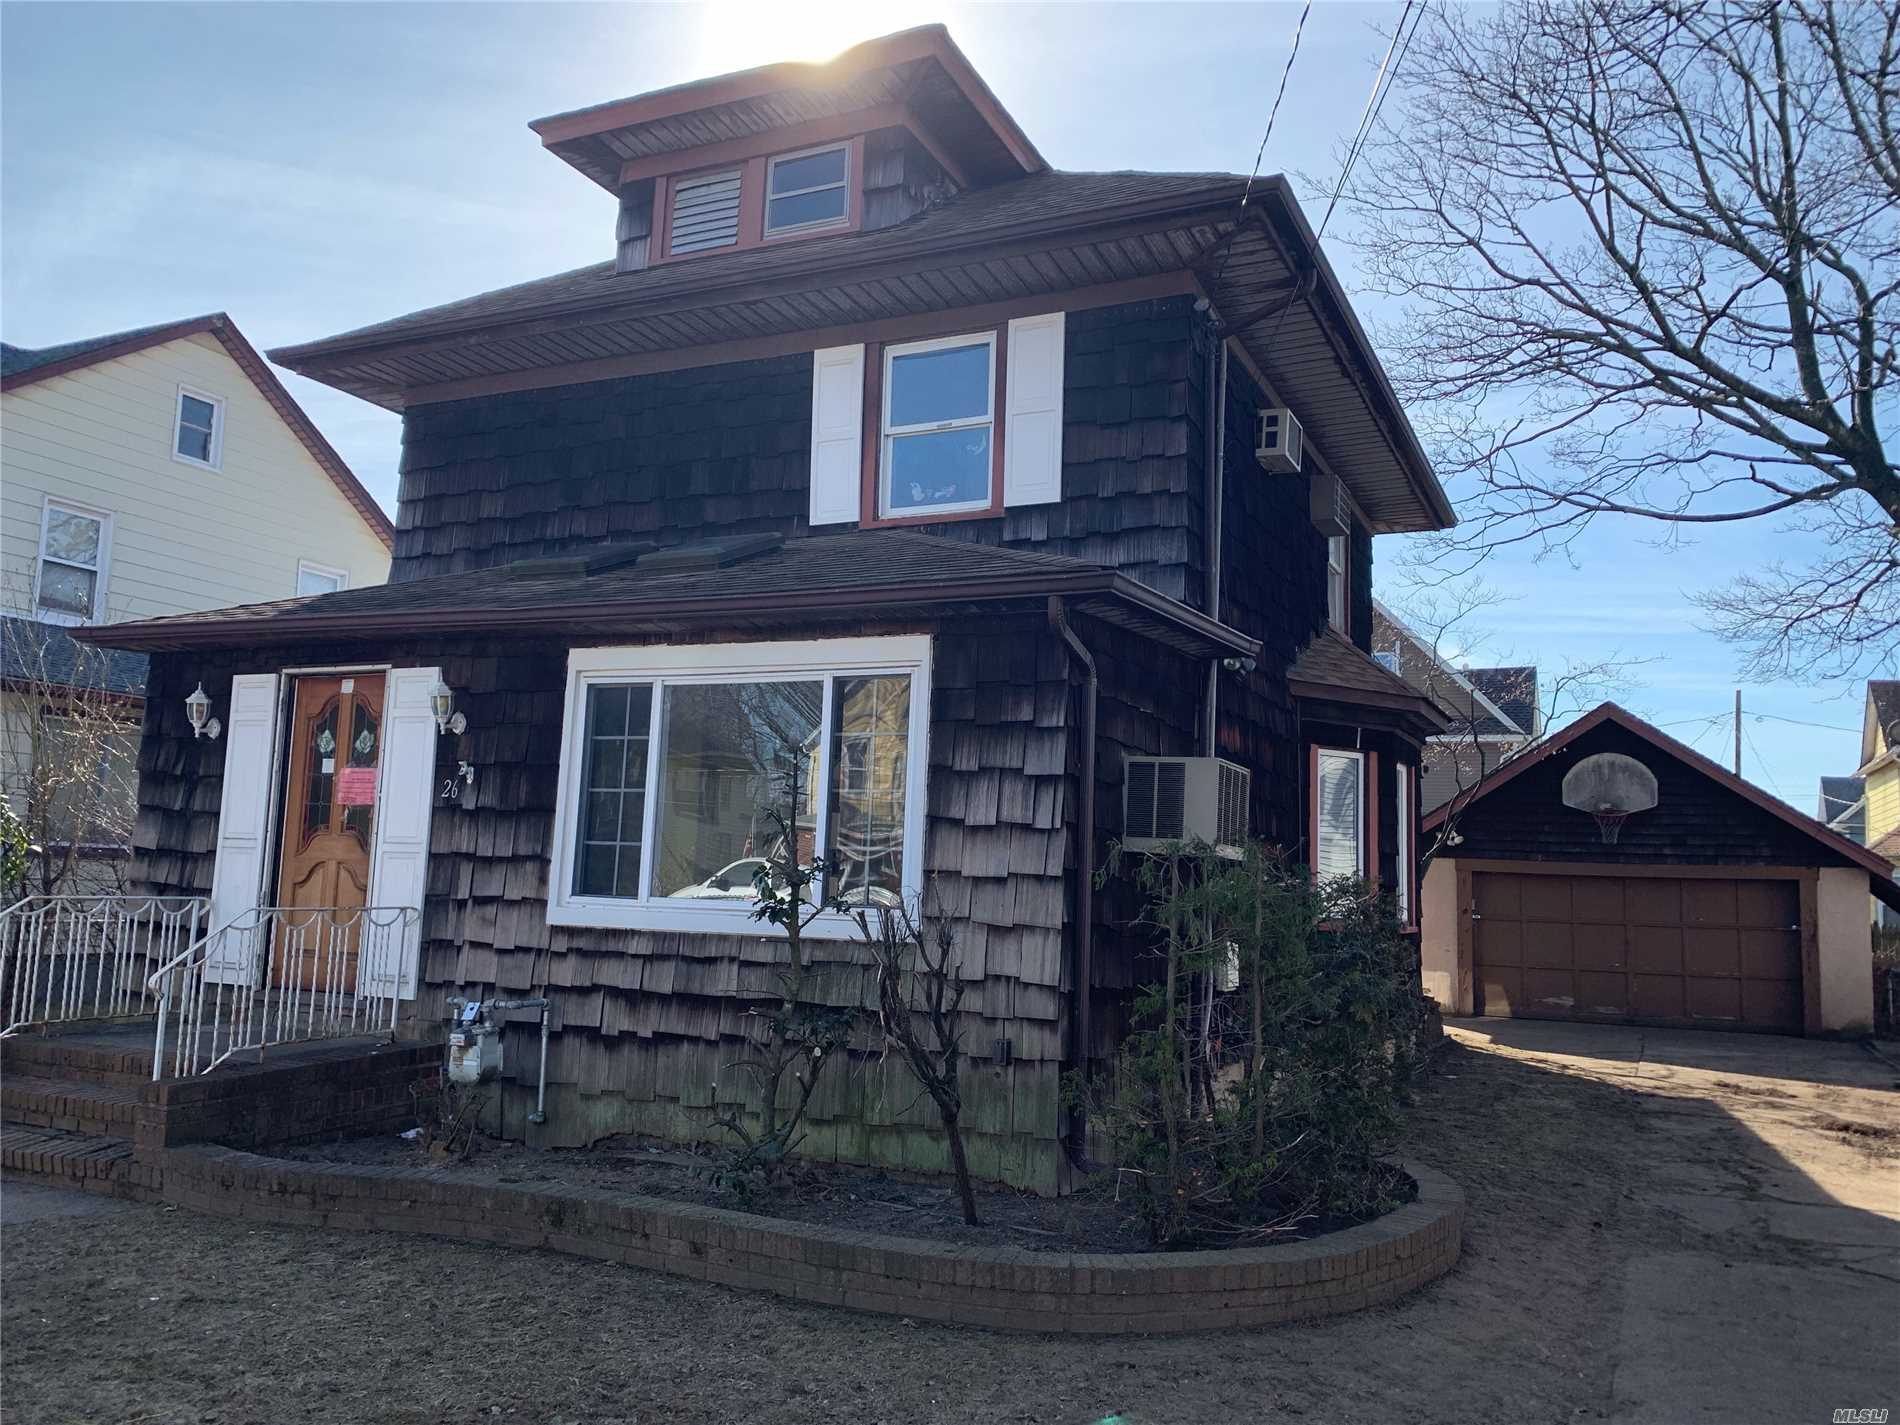 Wonderful Opportunity To Own In Historic Lynbrook* Great Home With Old World Charm And Open Floor Plan With Beautiful Sunroom Off The Large Kitchen*Long Elongated Driveway Leads To The 2 Car Detached Garage* Bring Your Creativity And Ideas And Make This Home! Close To Schools*Shopping And Major Roadways*Must See!